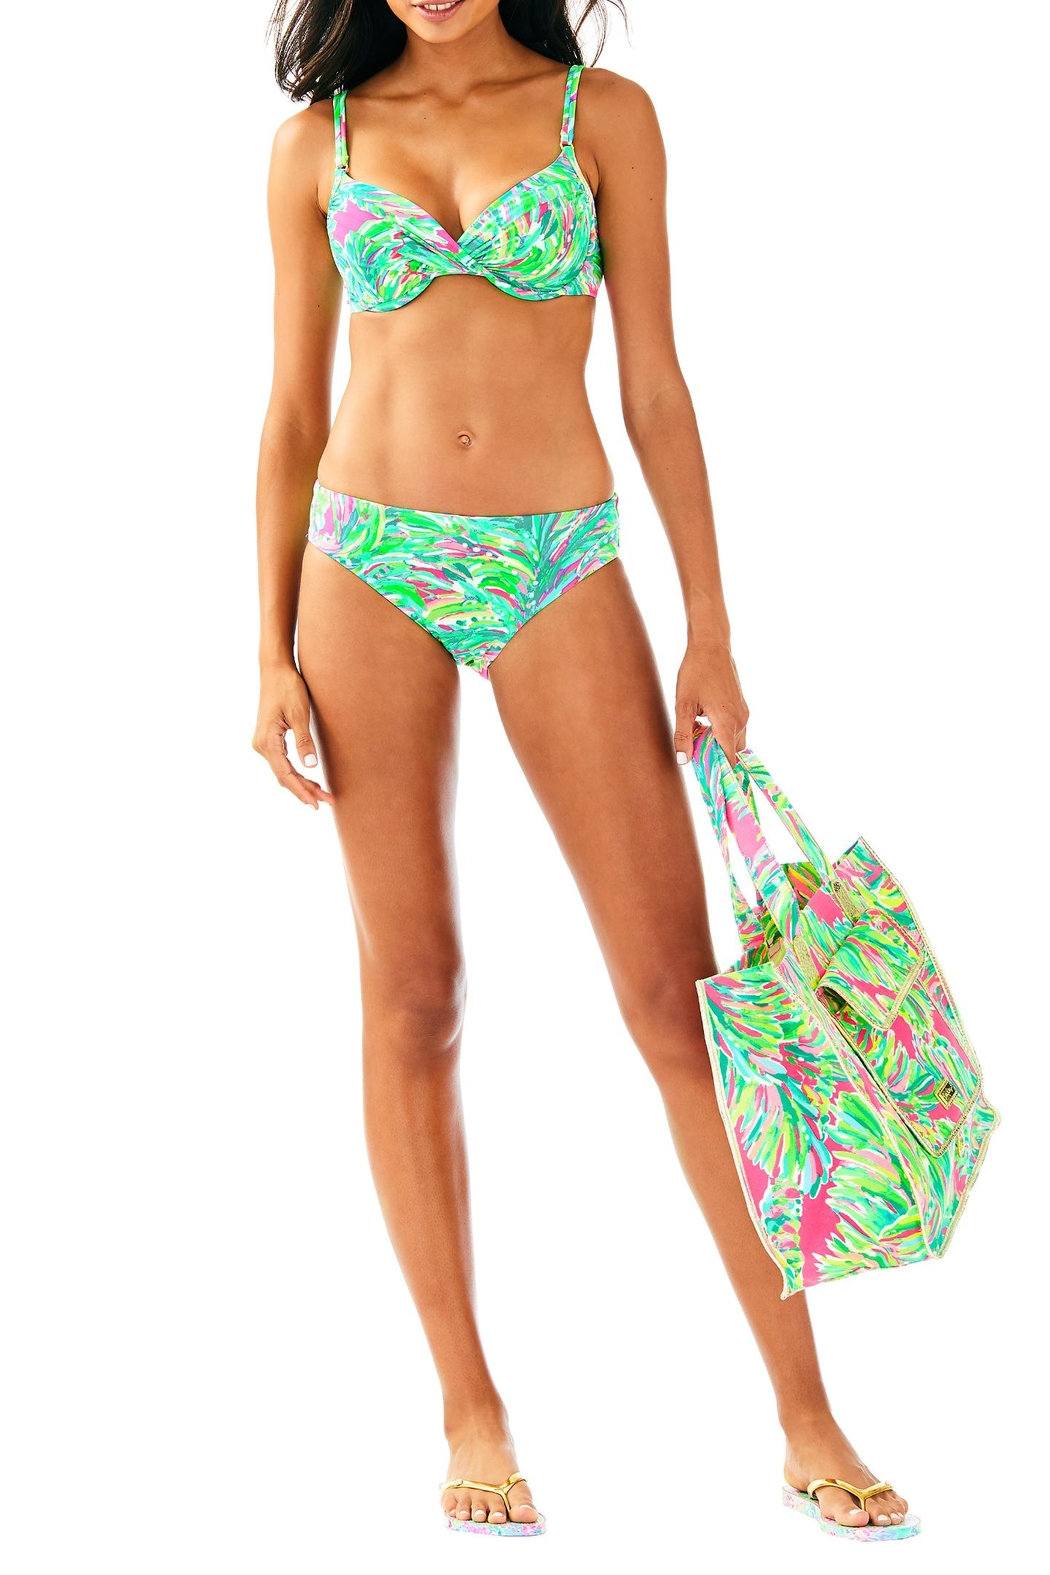 Lilly Pulitzer Blossom Bikini Bottom - Side Cropped Image